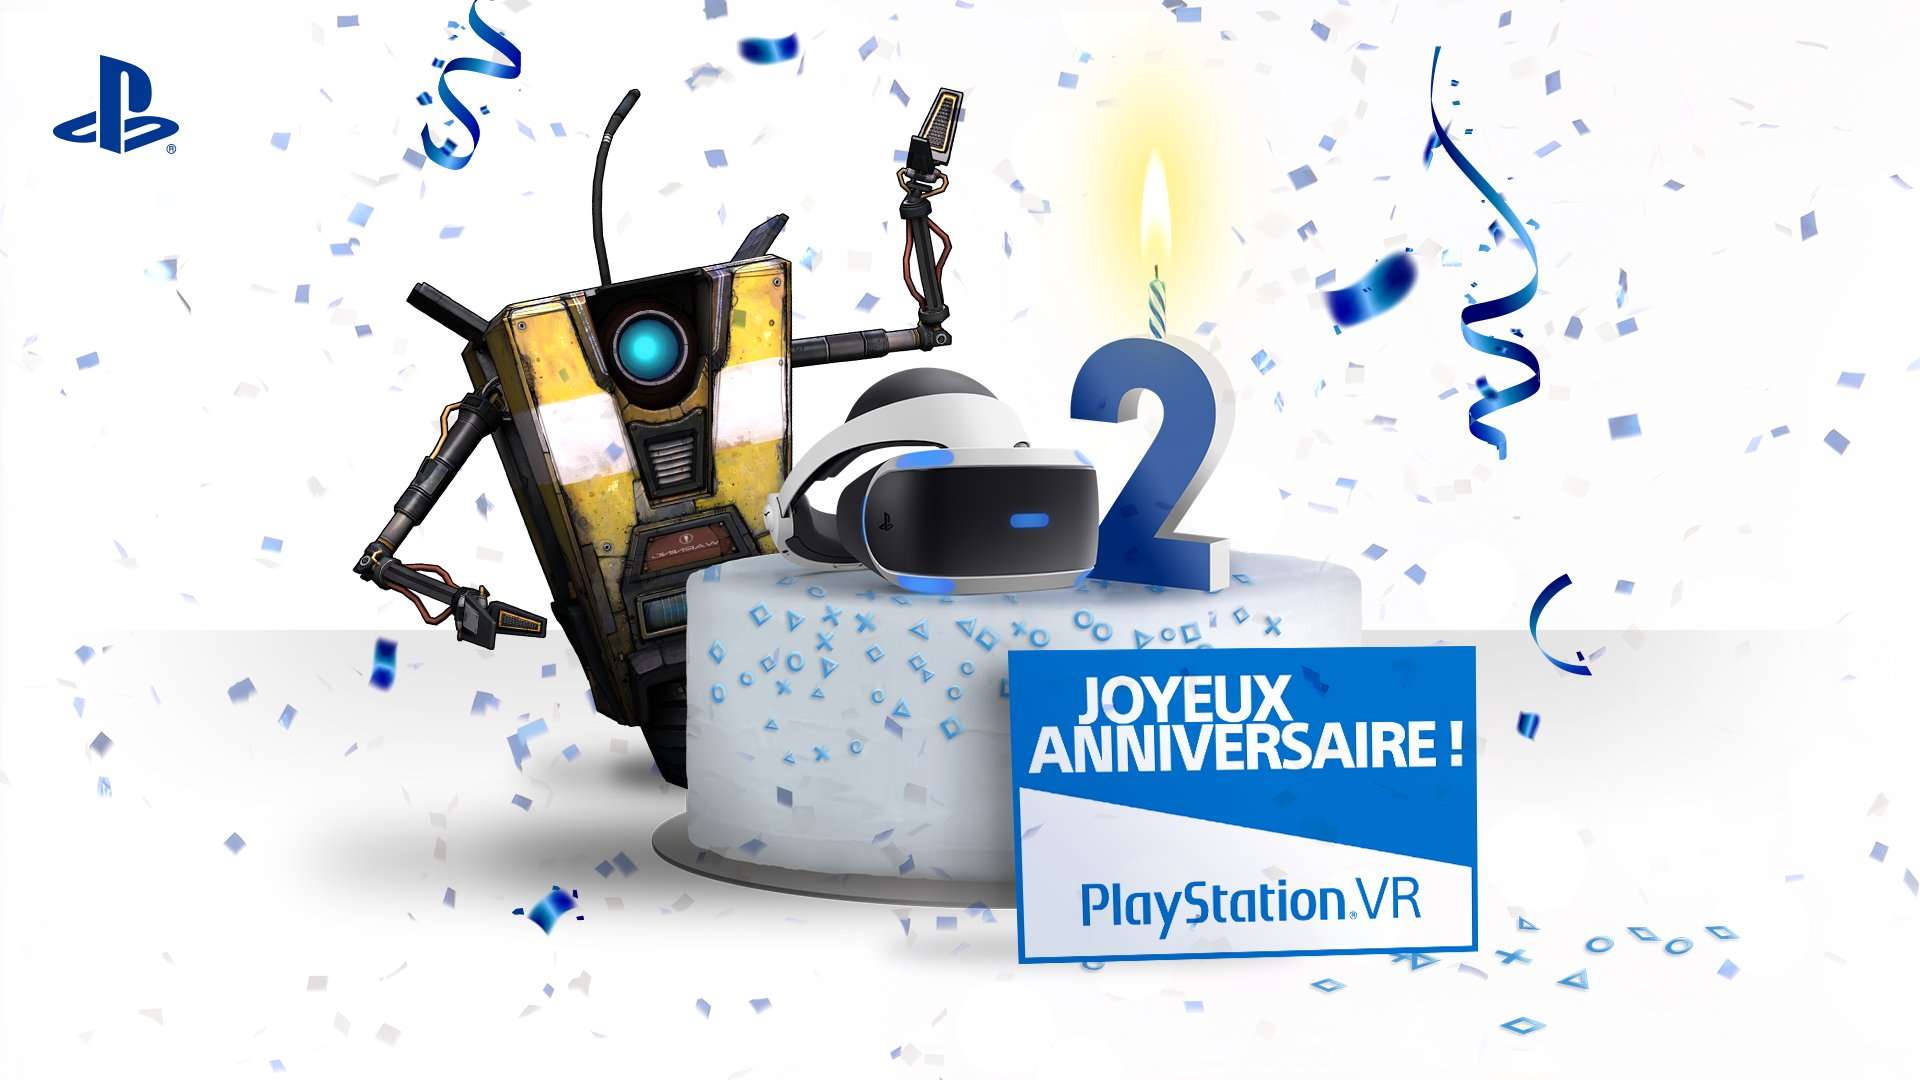 le playstation vr f te ses 2 ans avec de nouvelles annonces. Black Bedroom Furniture Sets. Home Design Ideas